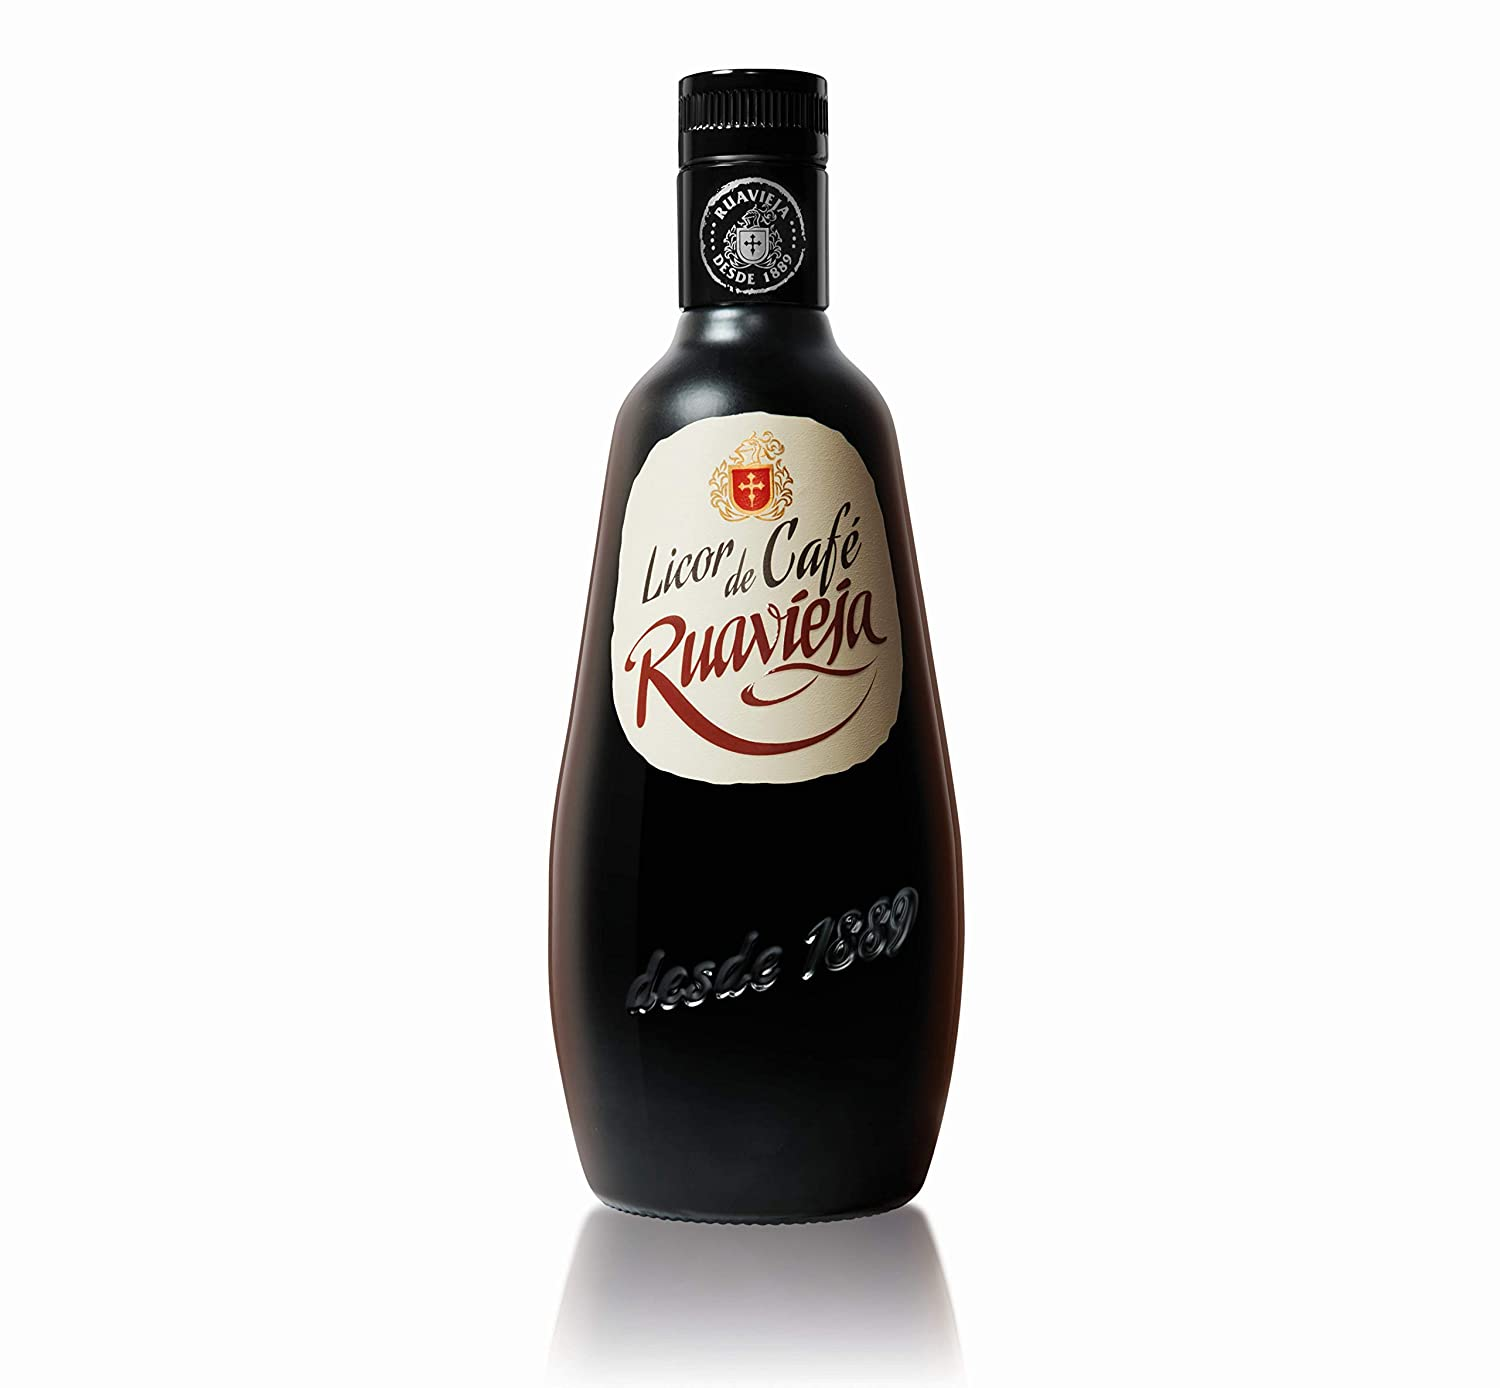 Ruavieja Licor de Café - 700 ml: Amazon.es: Amazon Pantry